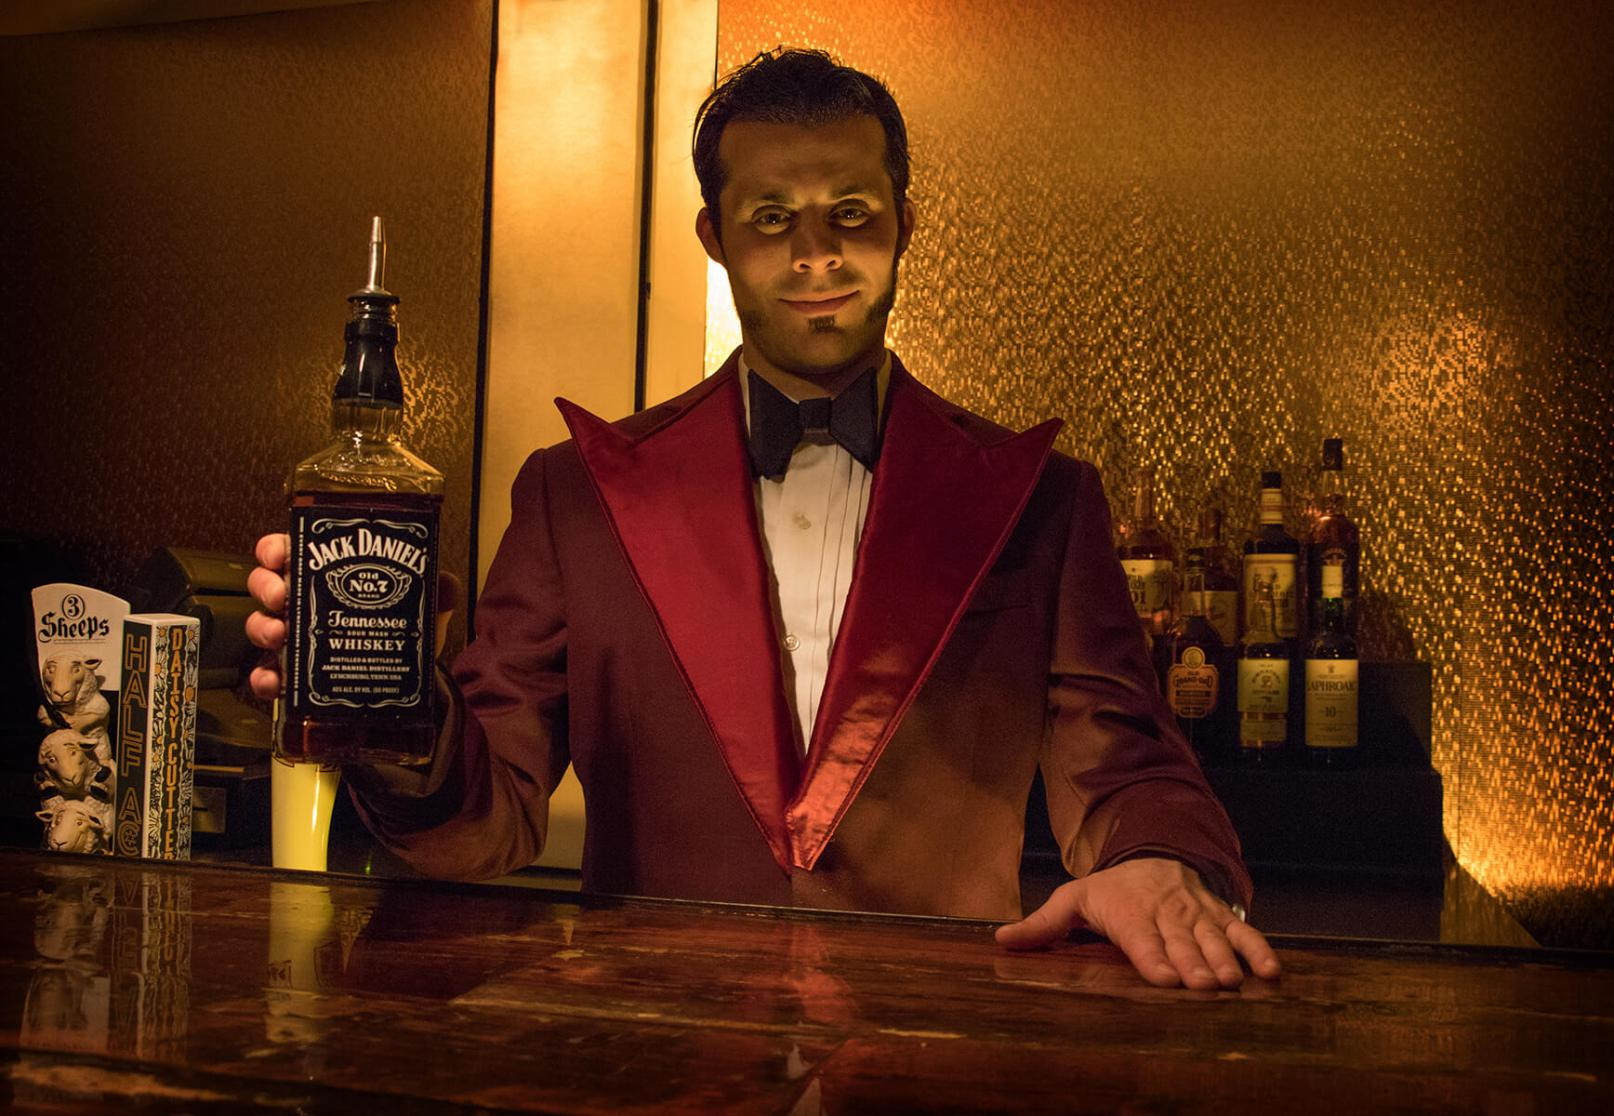 Grab a bourbon and an axe at Room 237 Sat 1/20.